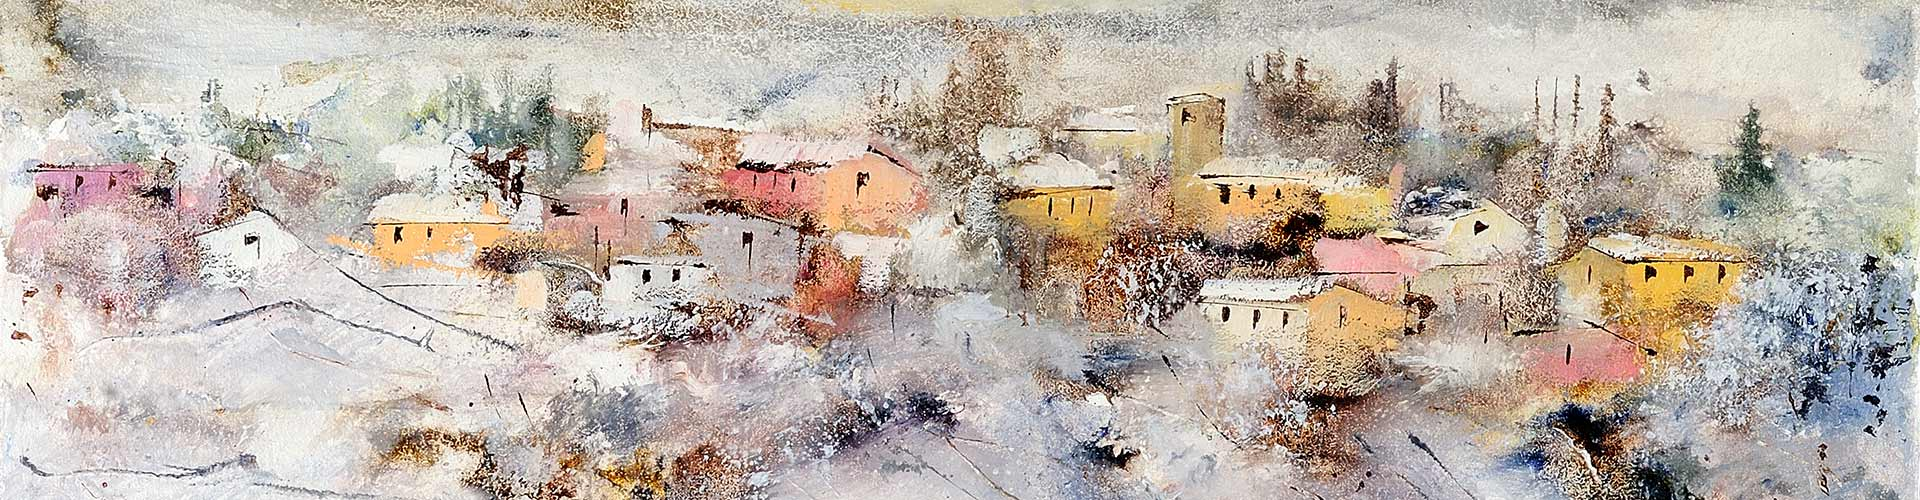 luciano-pasquini-nevicate-title